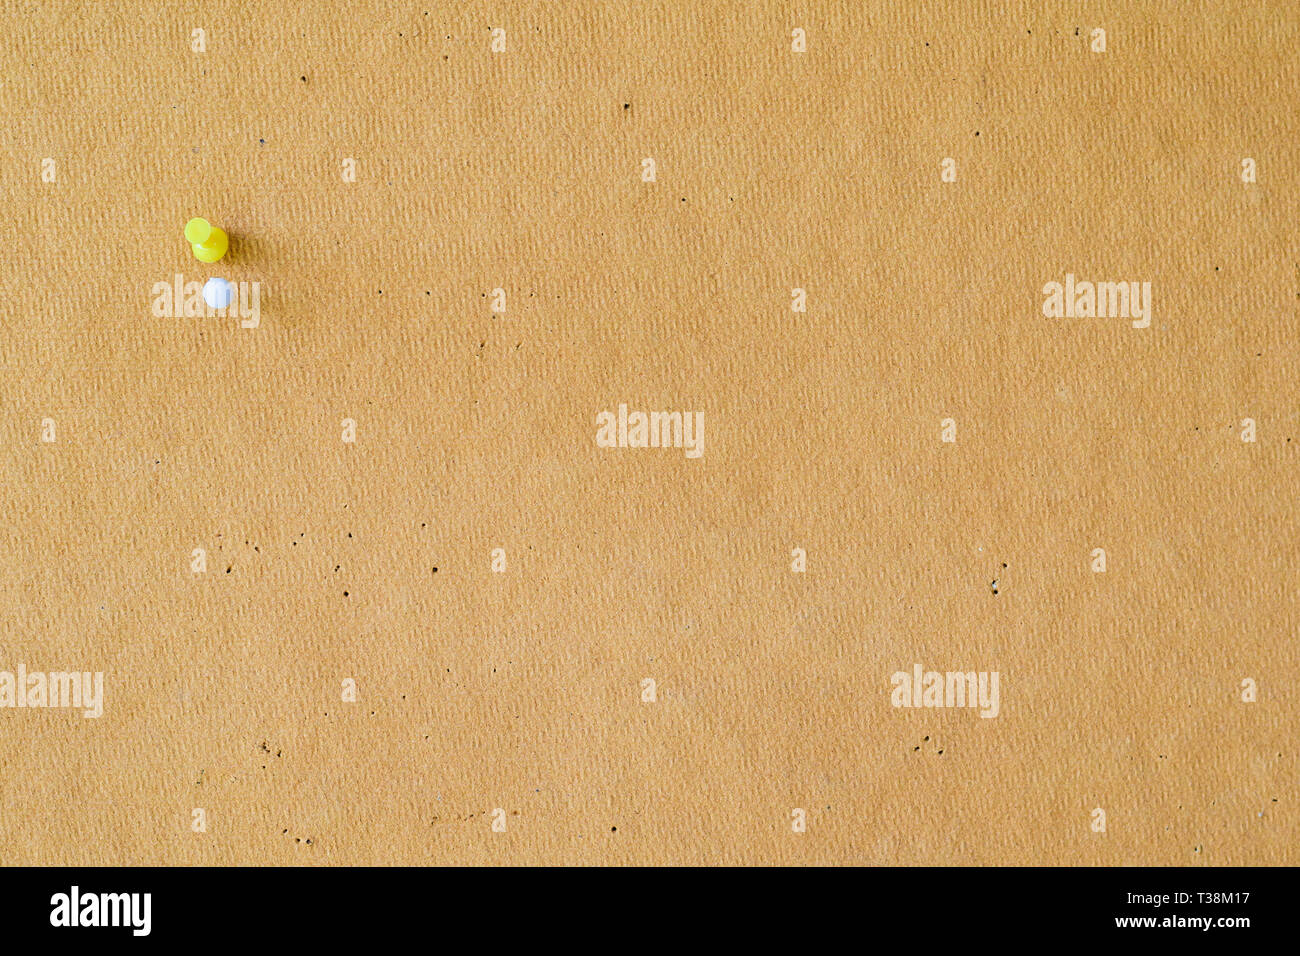 Pin Board Texture Background For Noticeboard Design Background Taken From The Background Of The Old Public Pin Board Stock Photo Alamy